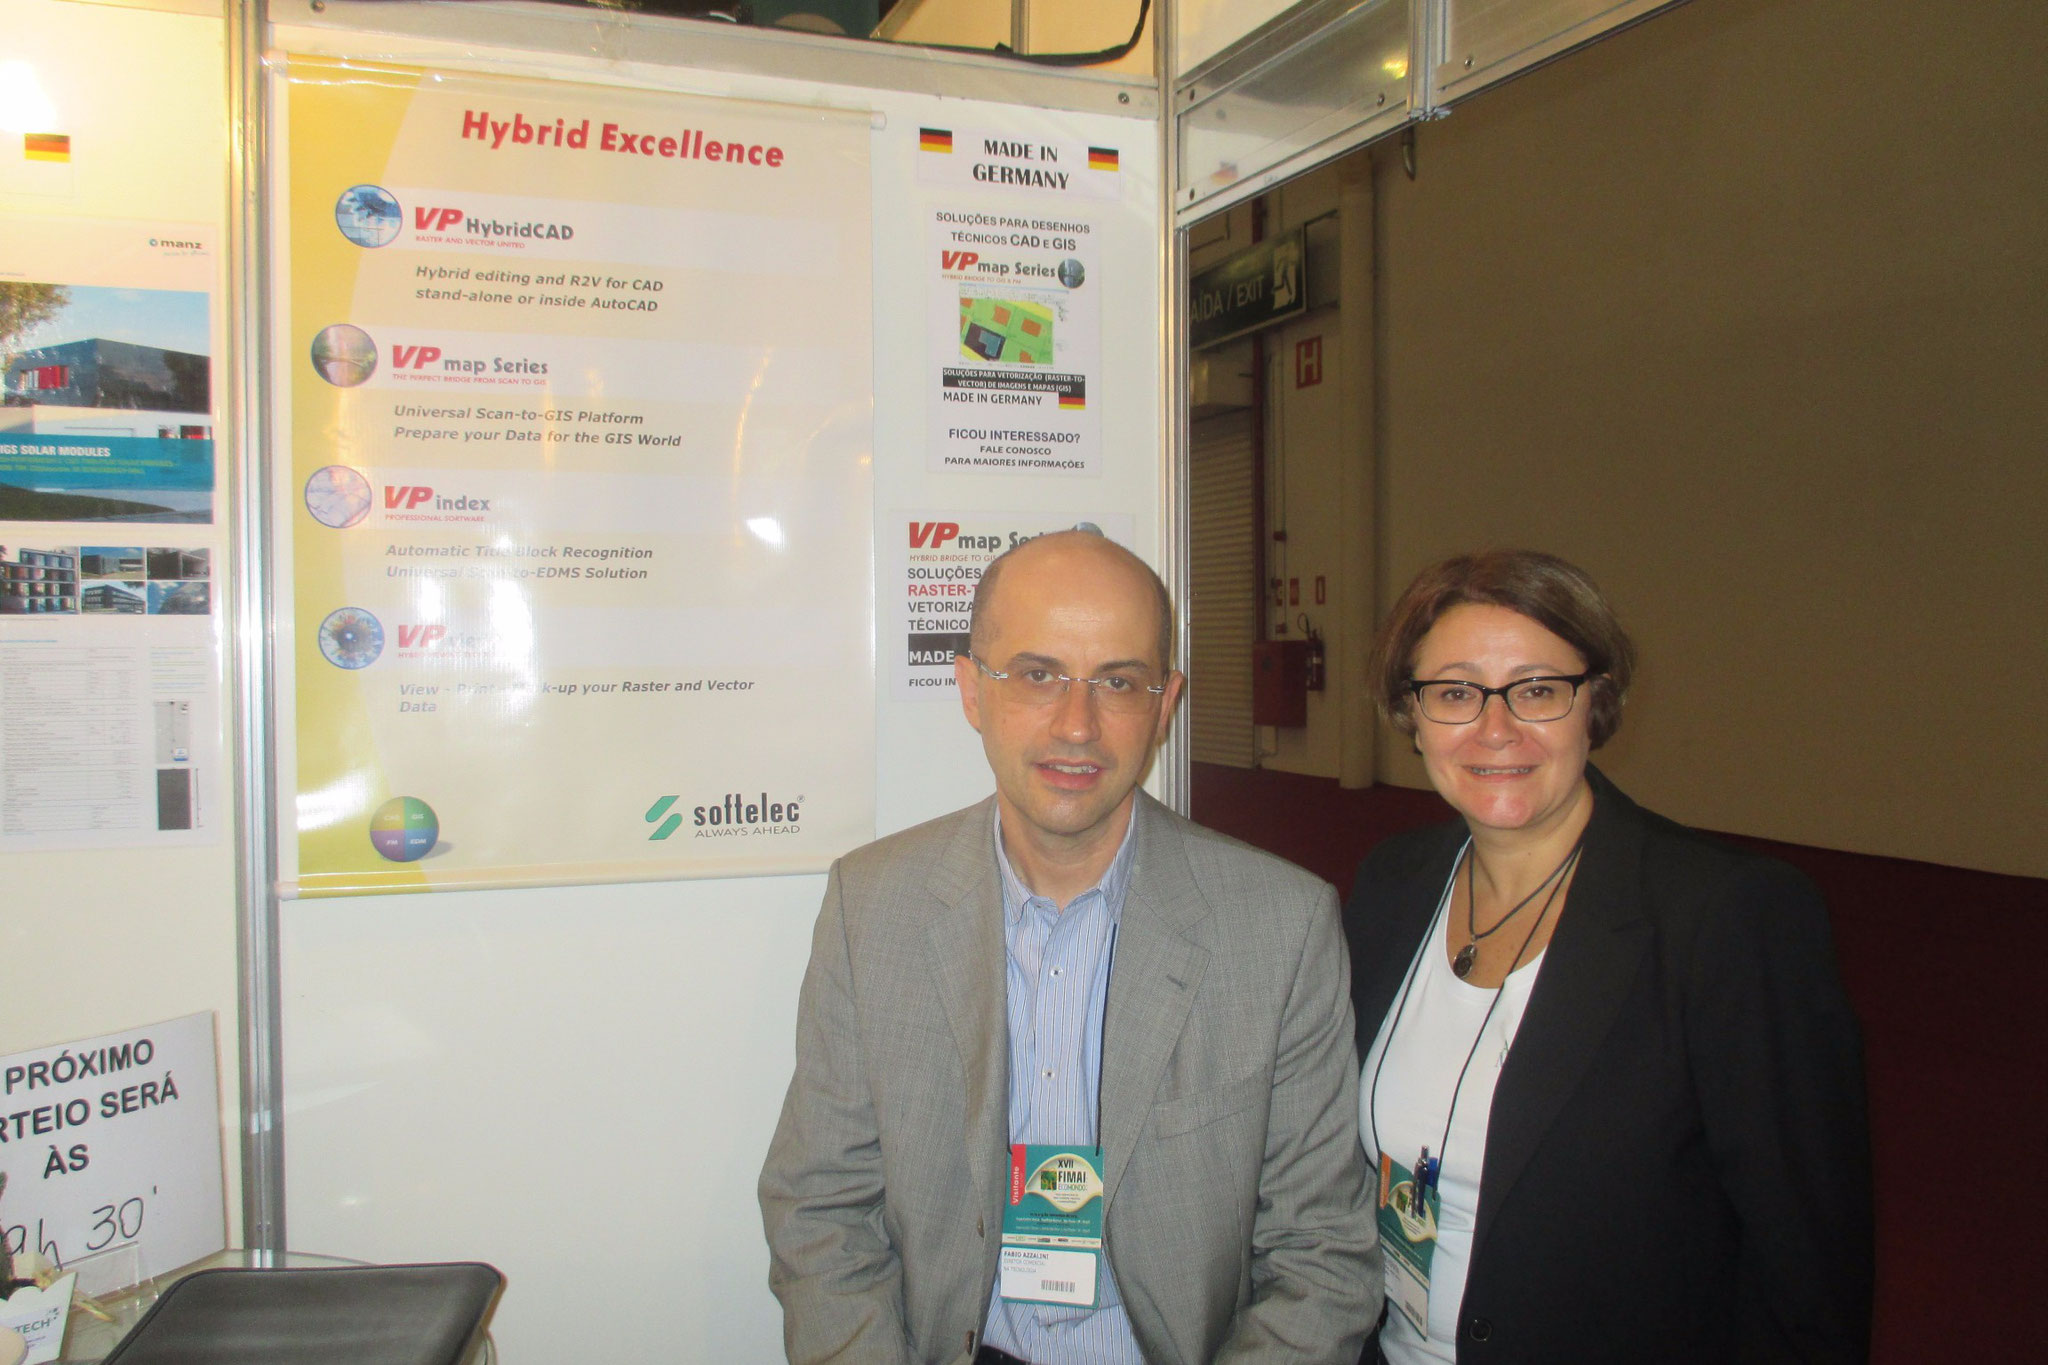 Exhibiting at FIMAI ECOMONDO in Sao Paulo, Brazil! With Fabio Azzaline, Director of NA Tecnologia.